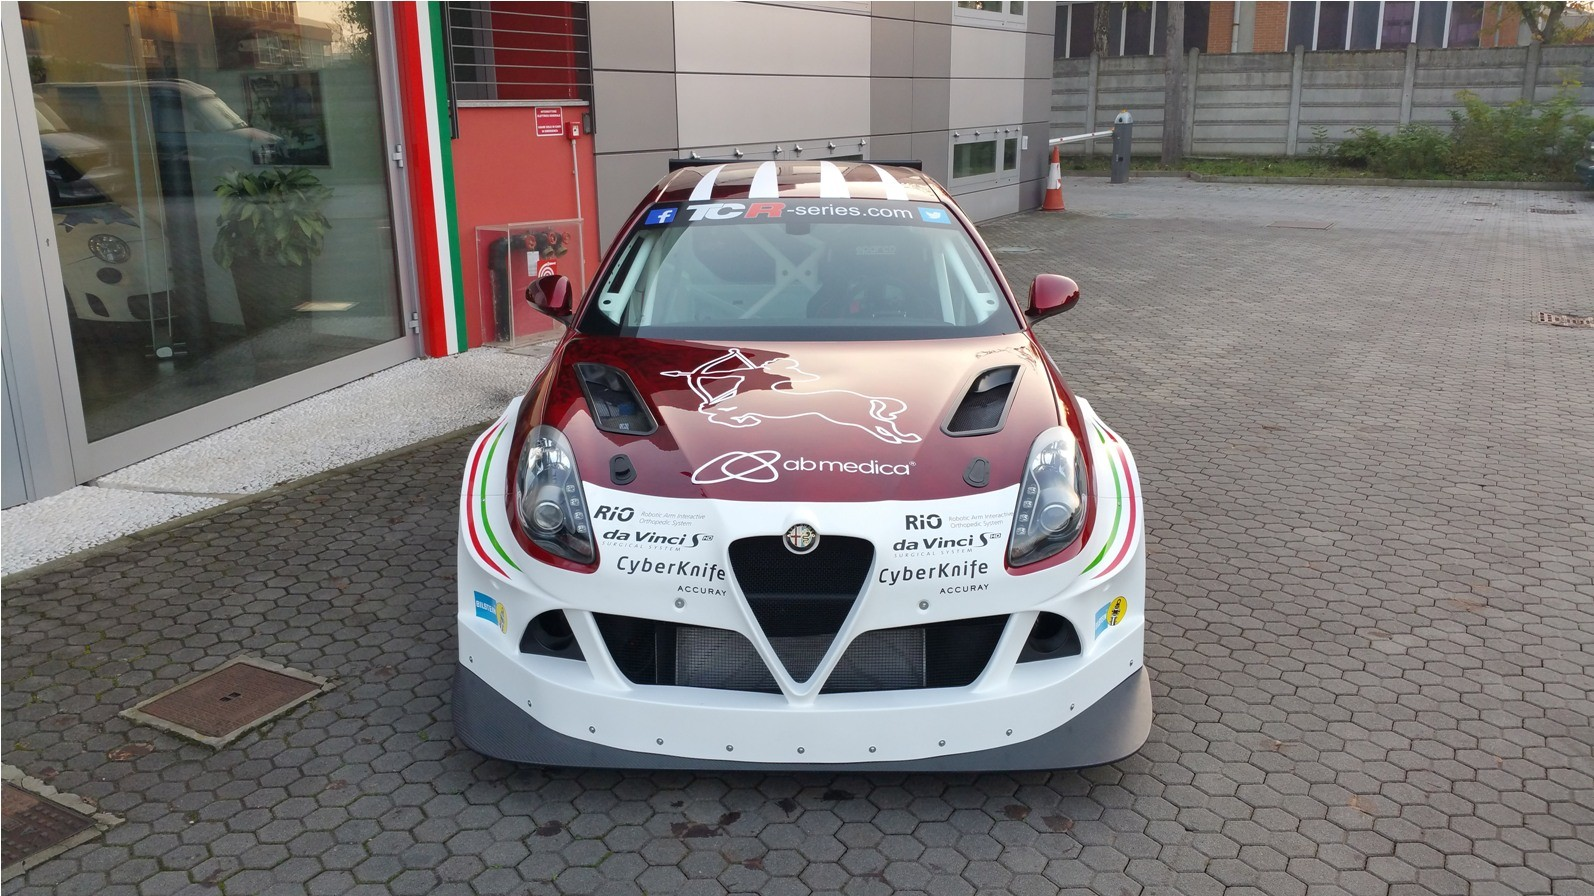 Alfa Romeo Giulietta Tcr By Romeo Ferraris Will Race In The 2016 Tcr International Series 102031 on alfa stelvio new york debut